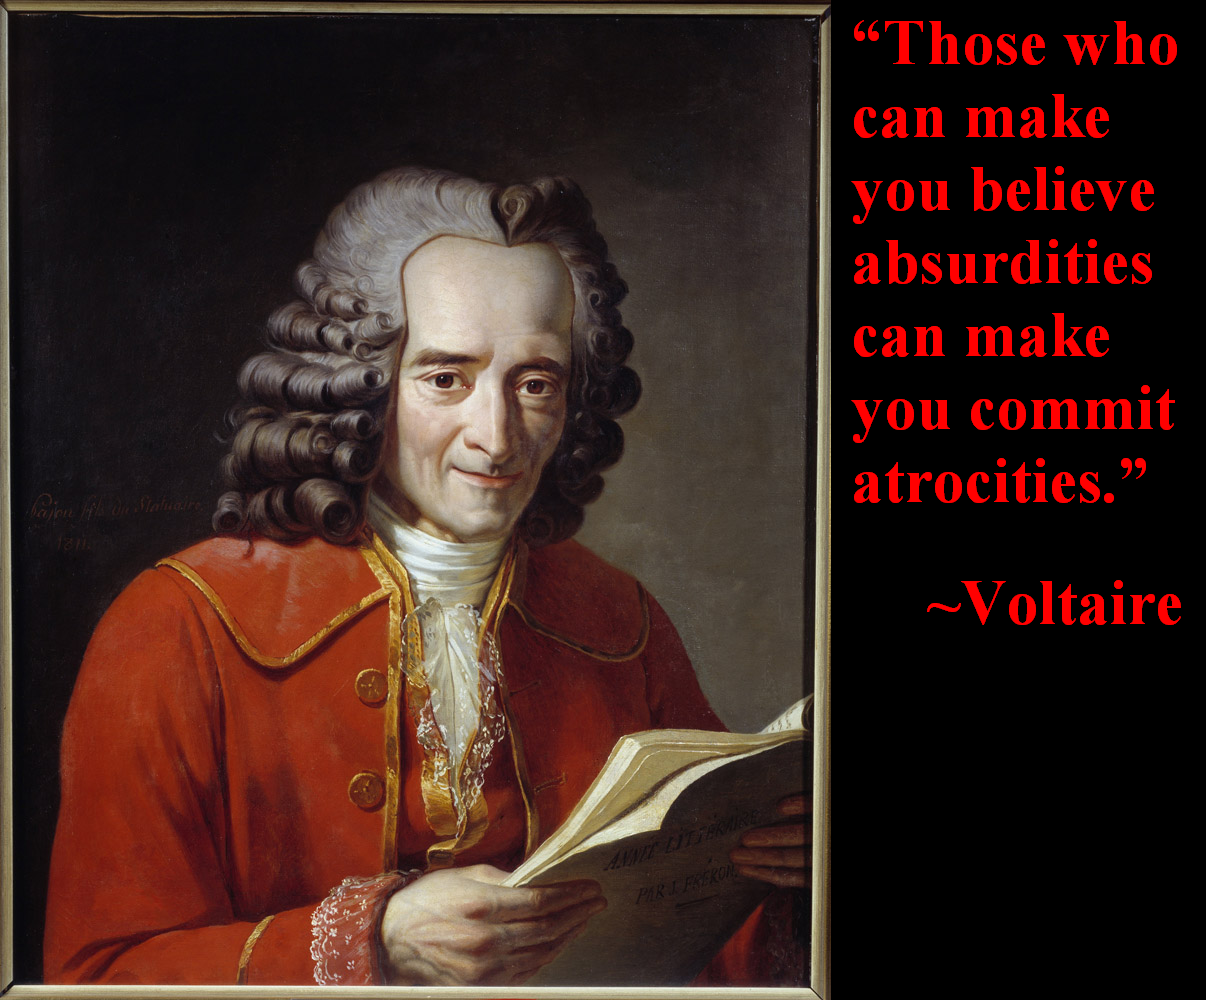 Quotes Voltaire A Quote From Voltaire On Absurdities And Atrocities